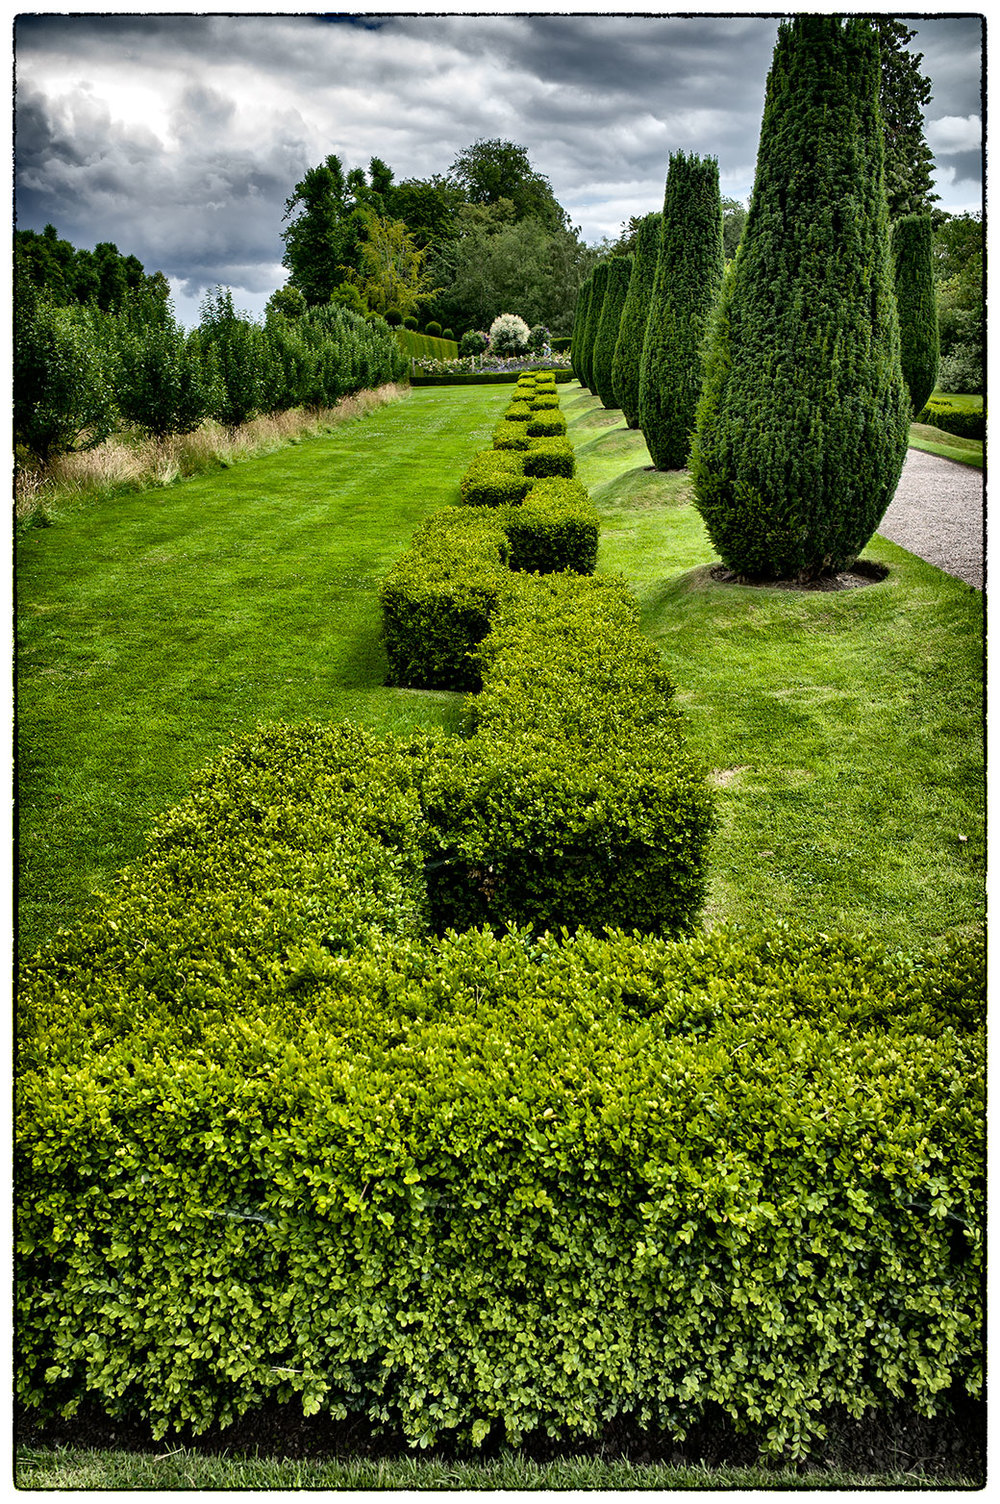 Asymmetrical Hedges at Erddig.